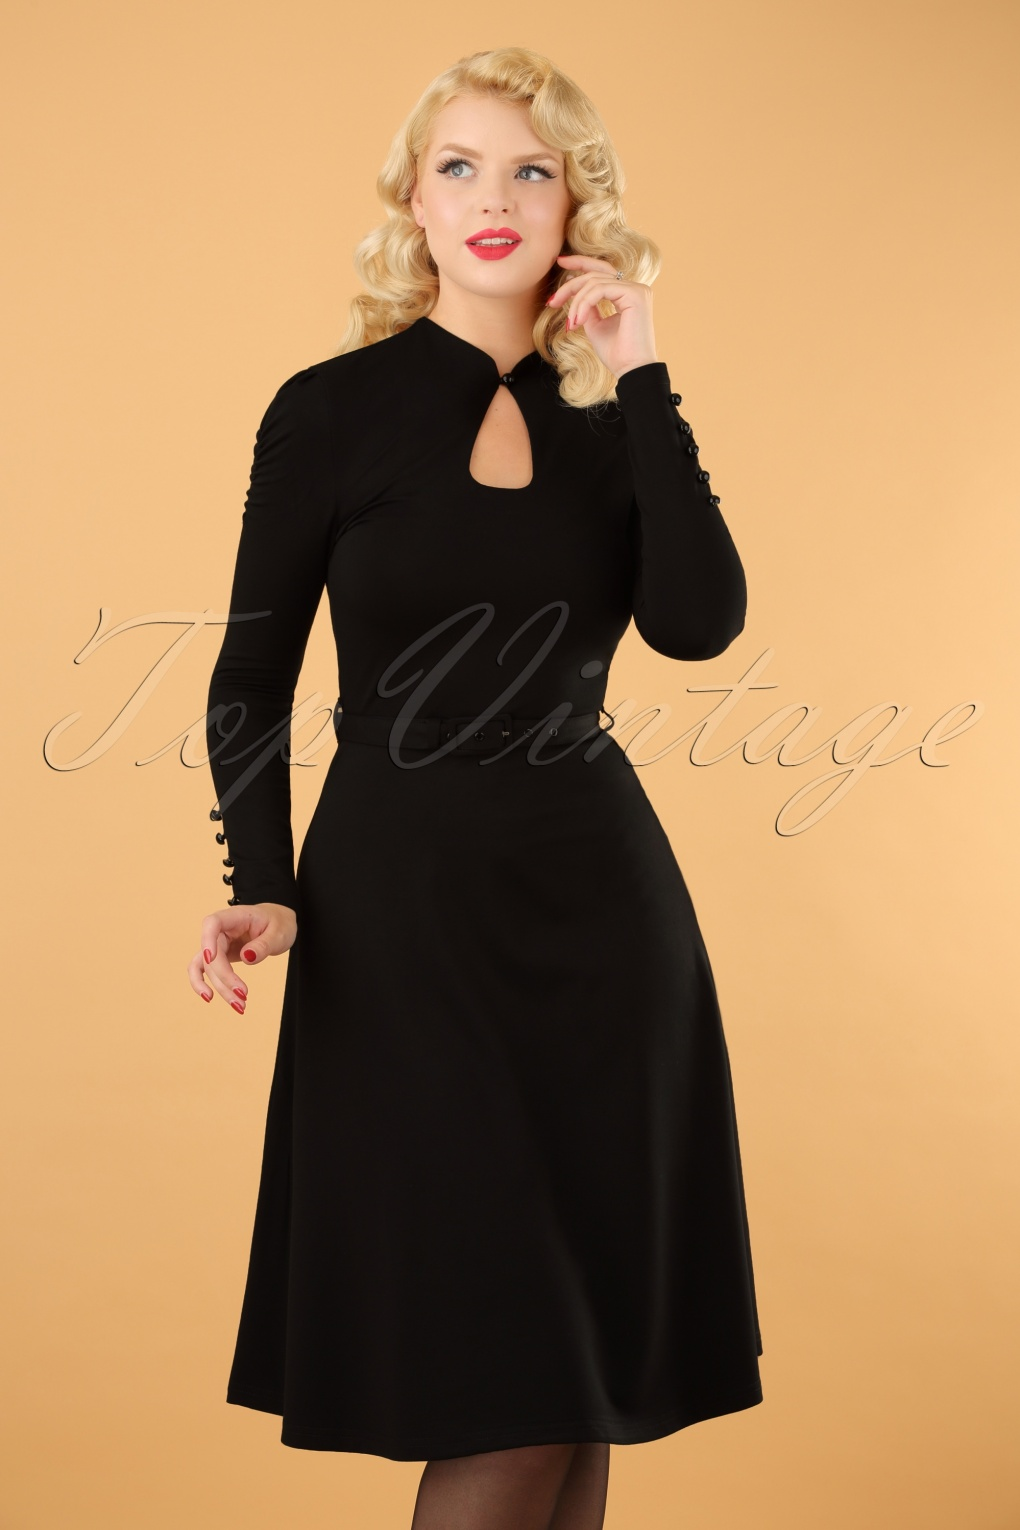 a022d03bfd26 50s Dita Swing Dress in Black